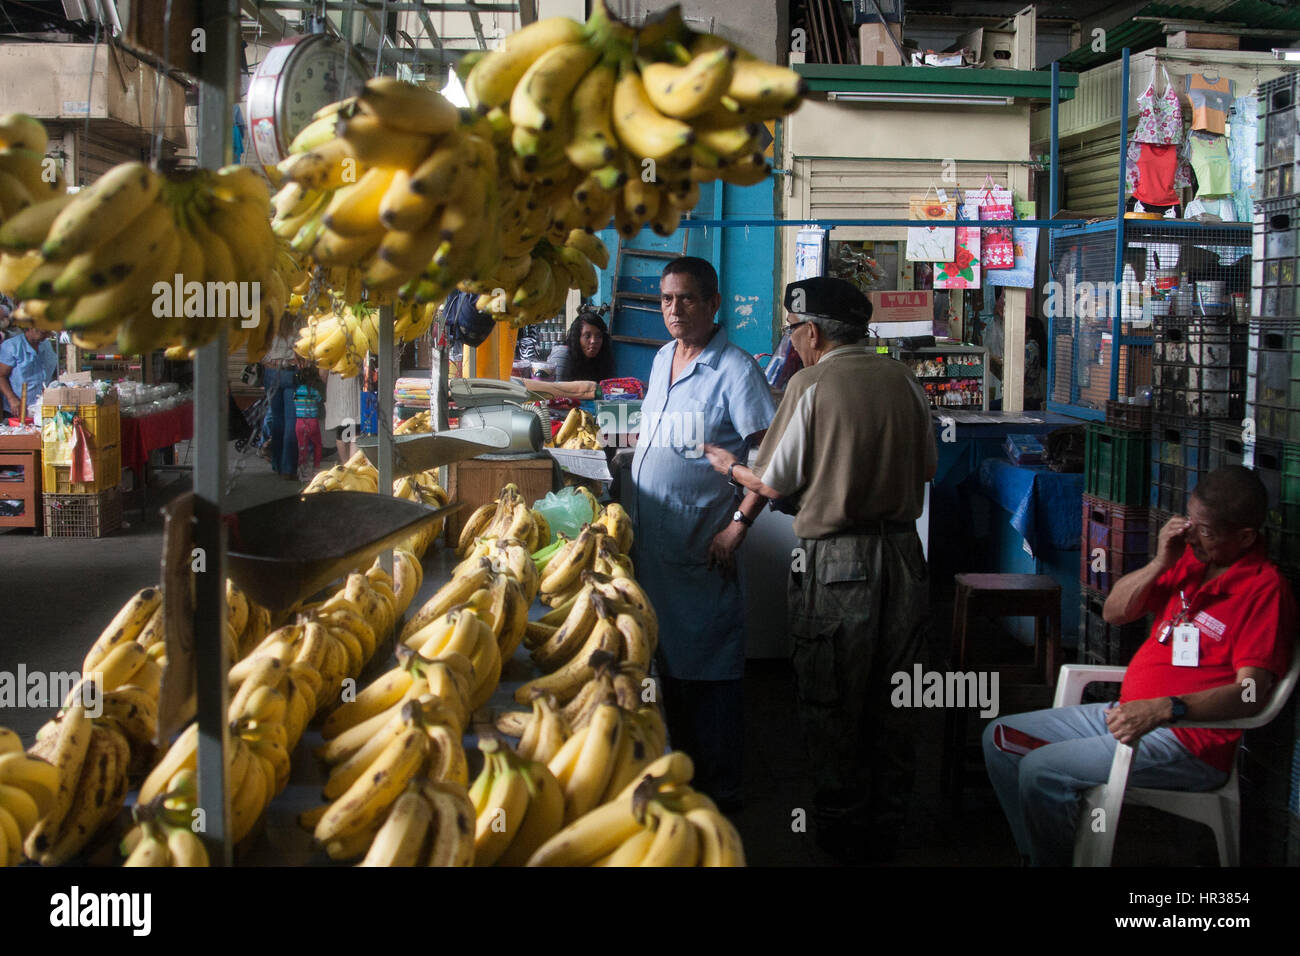 Caracas, Dtto Capital / Venezuela - 04-02-2012 : Man selling some bananas in a famous popular market Mercado de Stock Photo